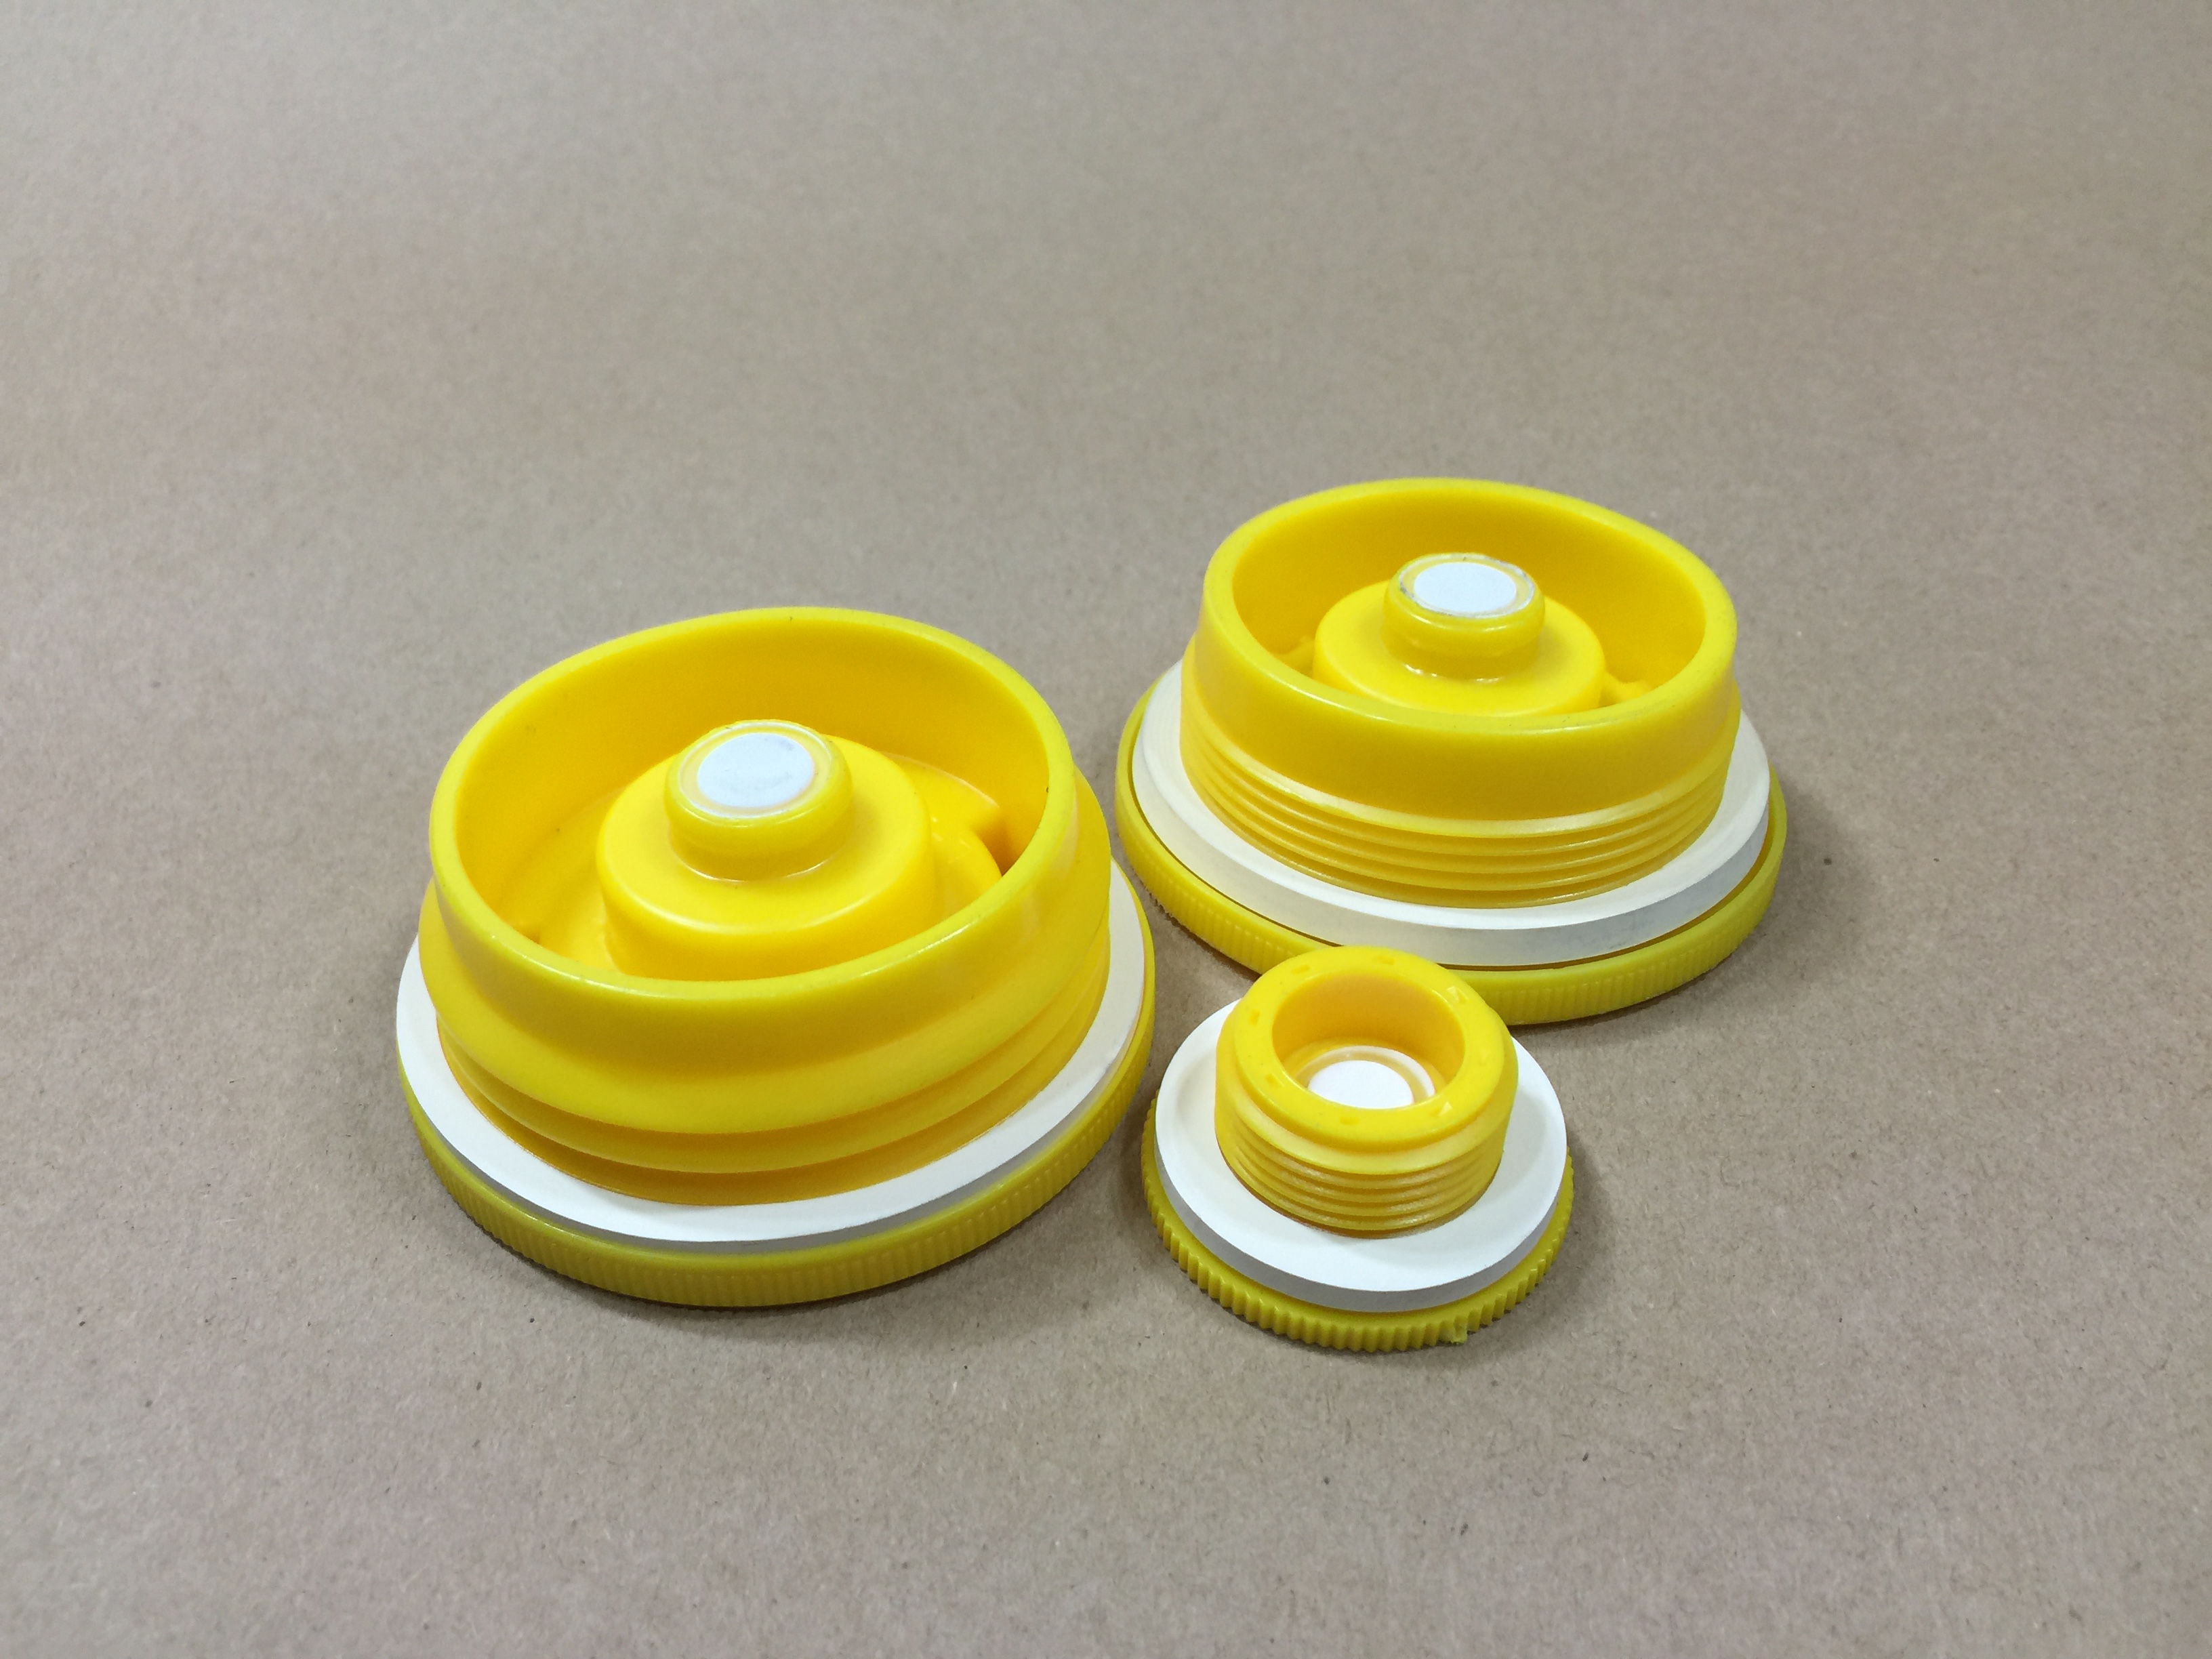 vented drum bungs, vented drum plugs, microporous vent plugs